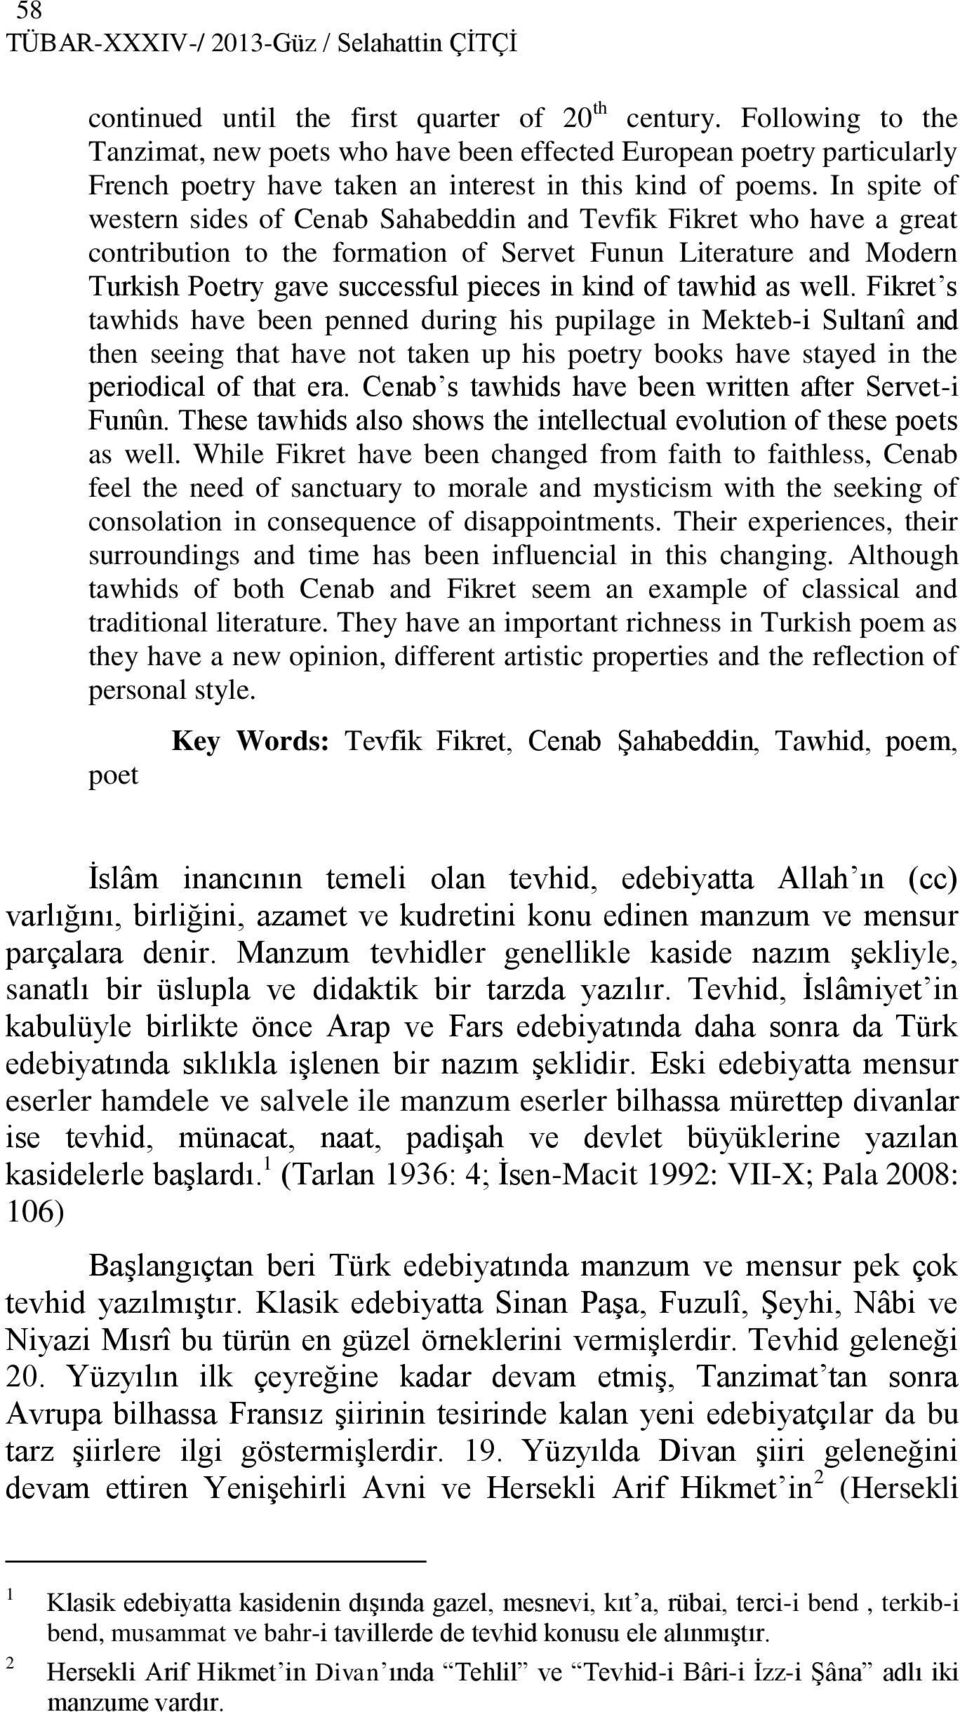 In spite of western sides of Cenab Sahabeddin and Tevfik Fikret who have a great contribution to the formation of Servet Funun Literature and Modern Turkish Poetry gave successful pieces in kind of